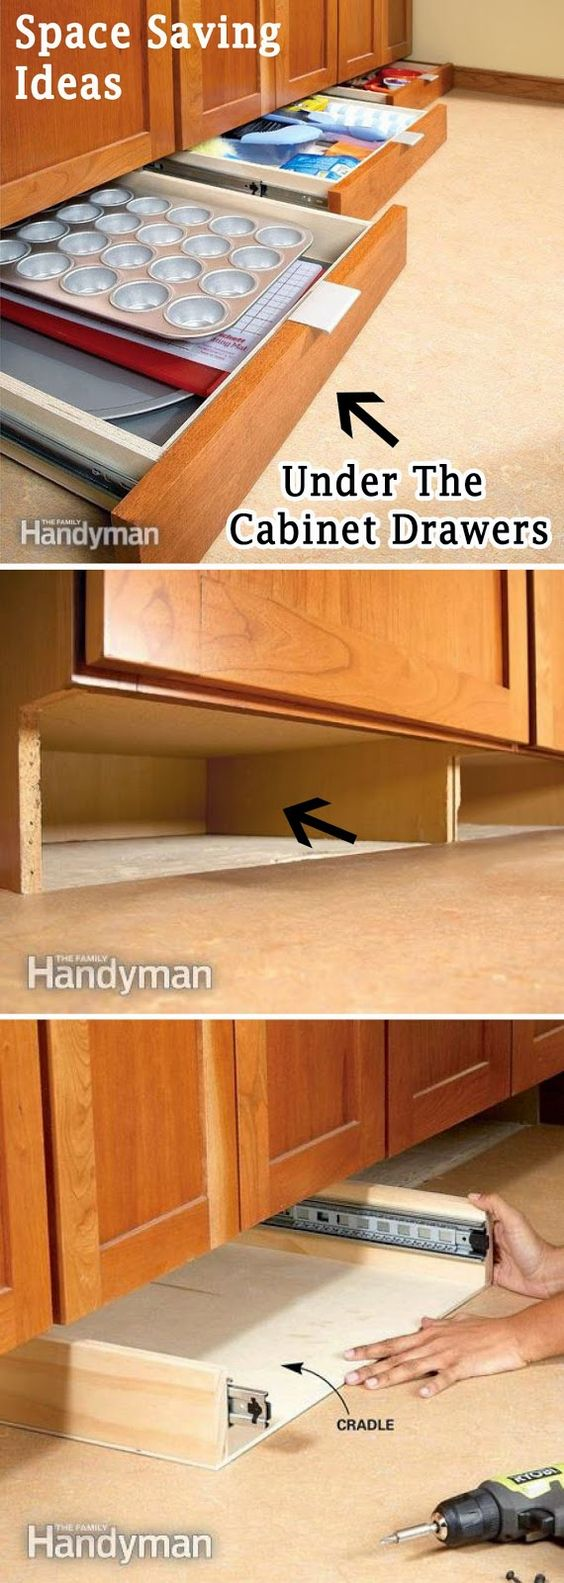 Get More Space in the Kitchen with Under-Cabinet Drawers.